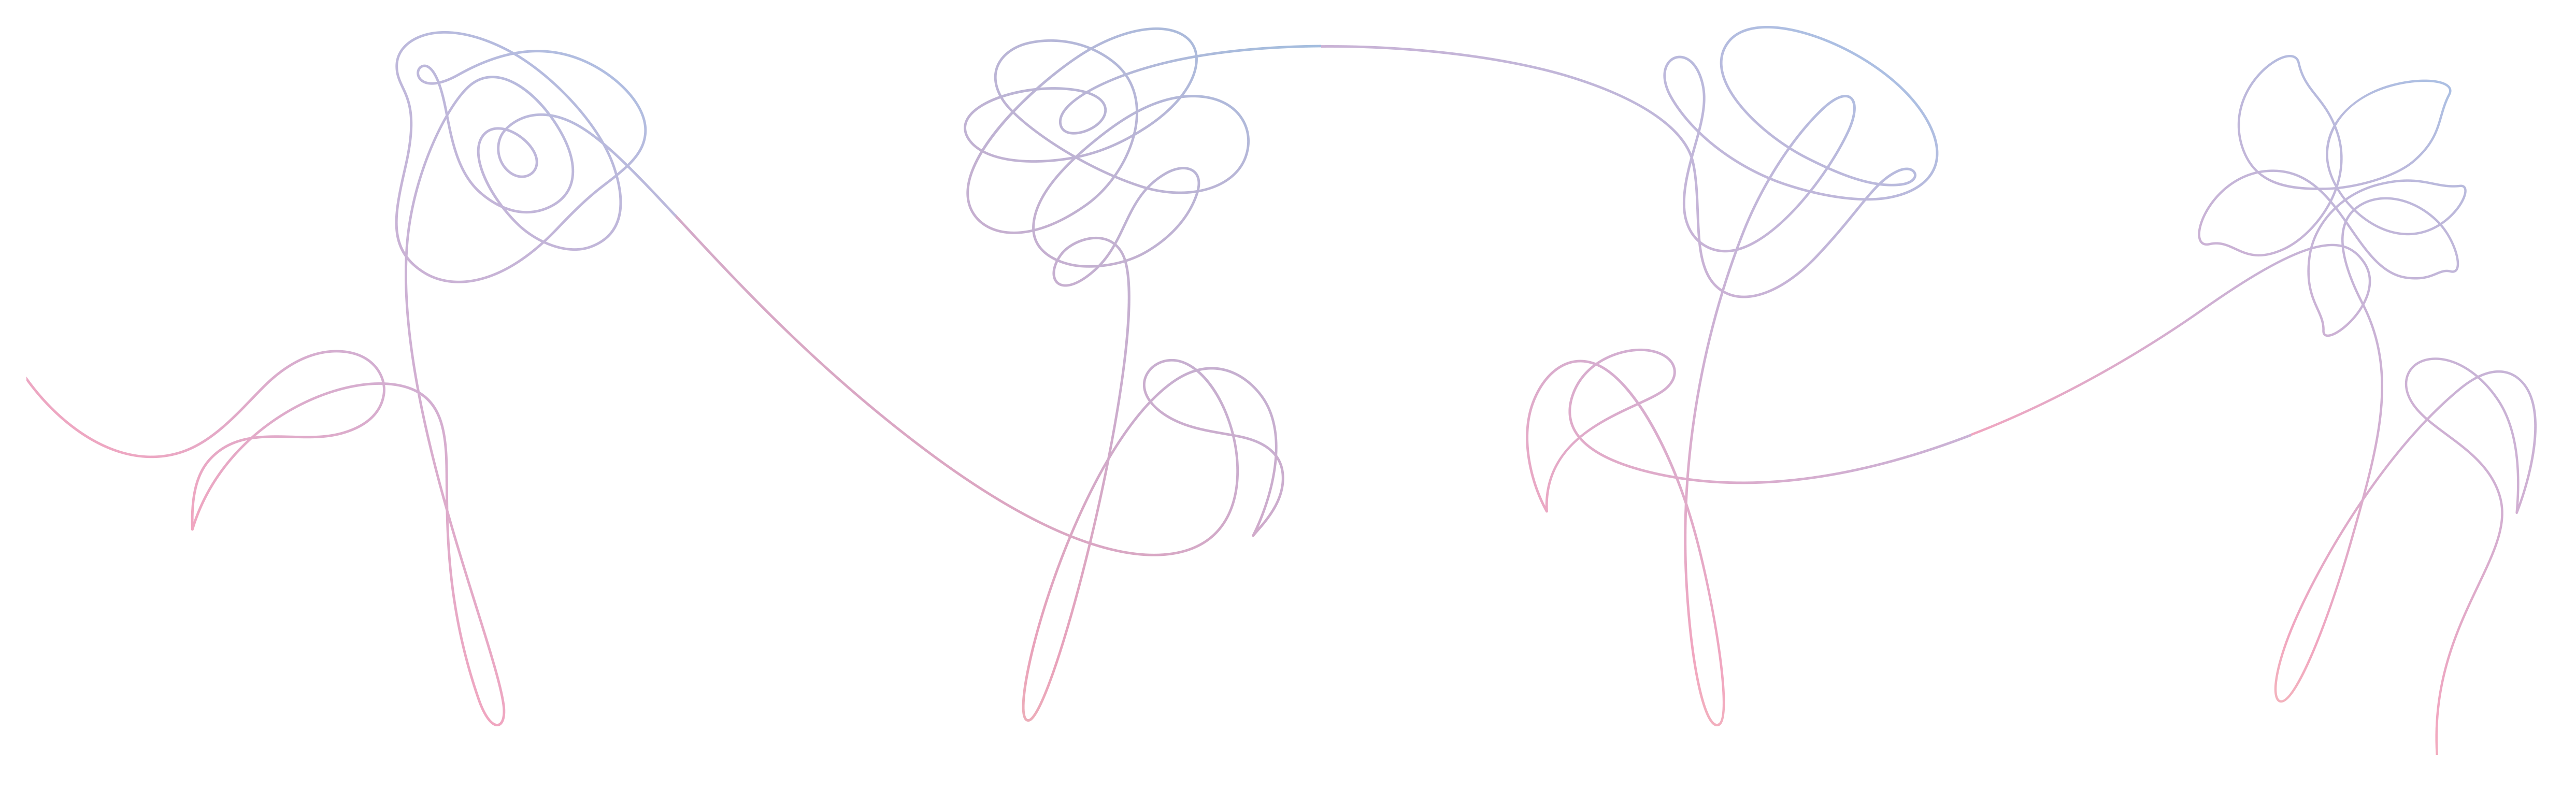 Bts love yourself png. The flowers from each